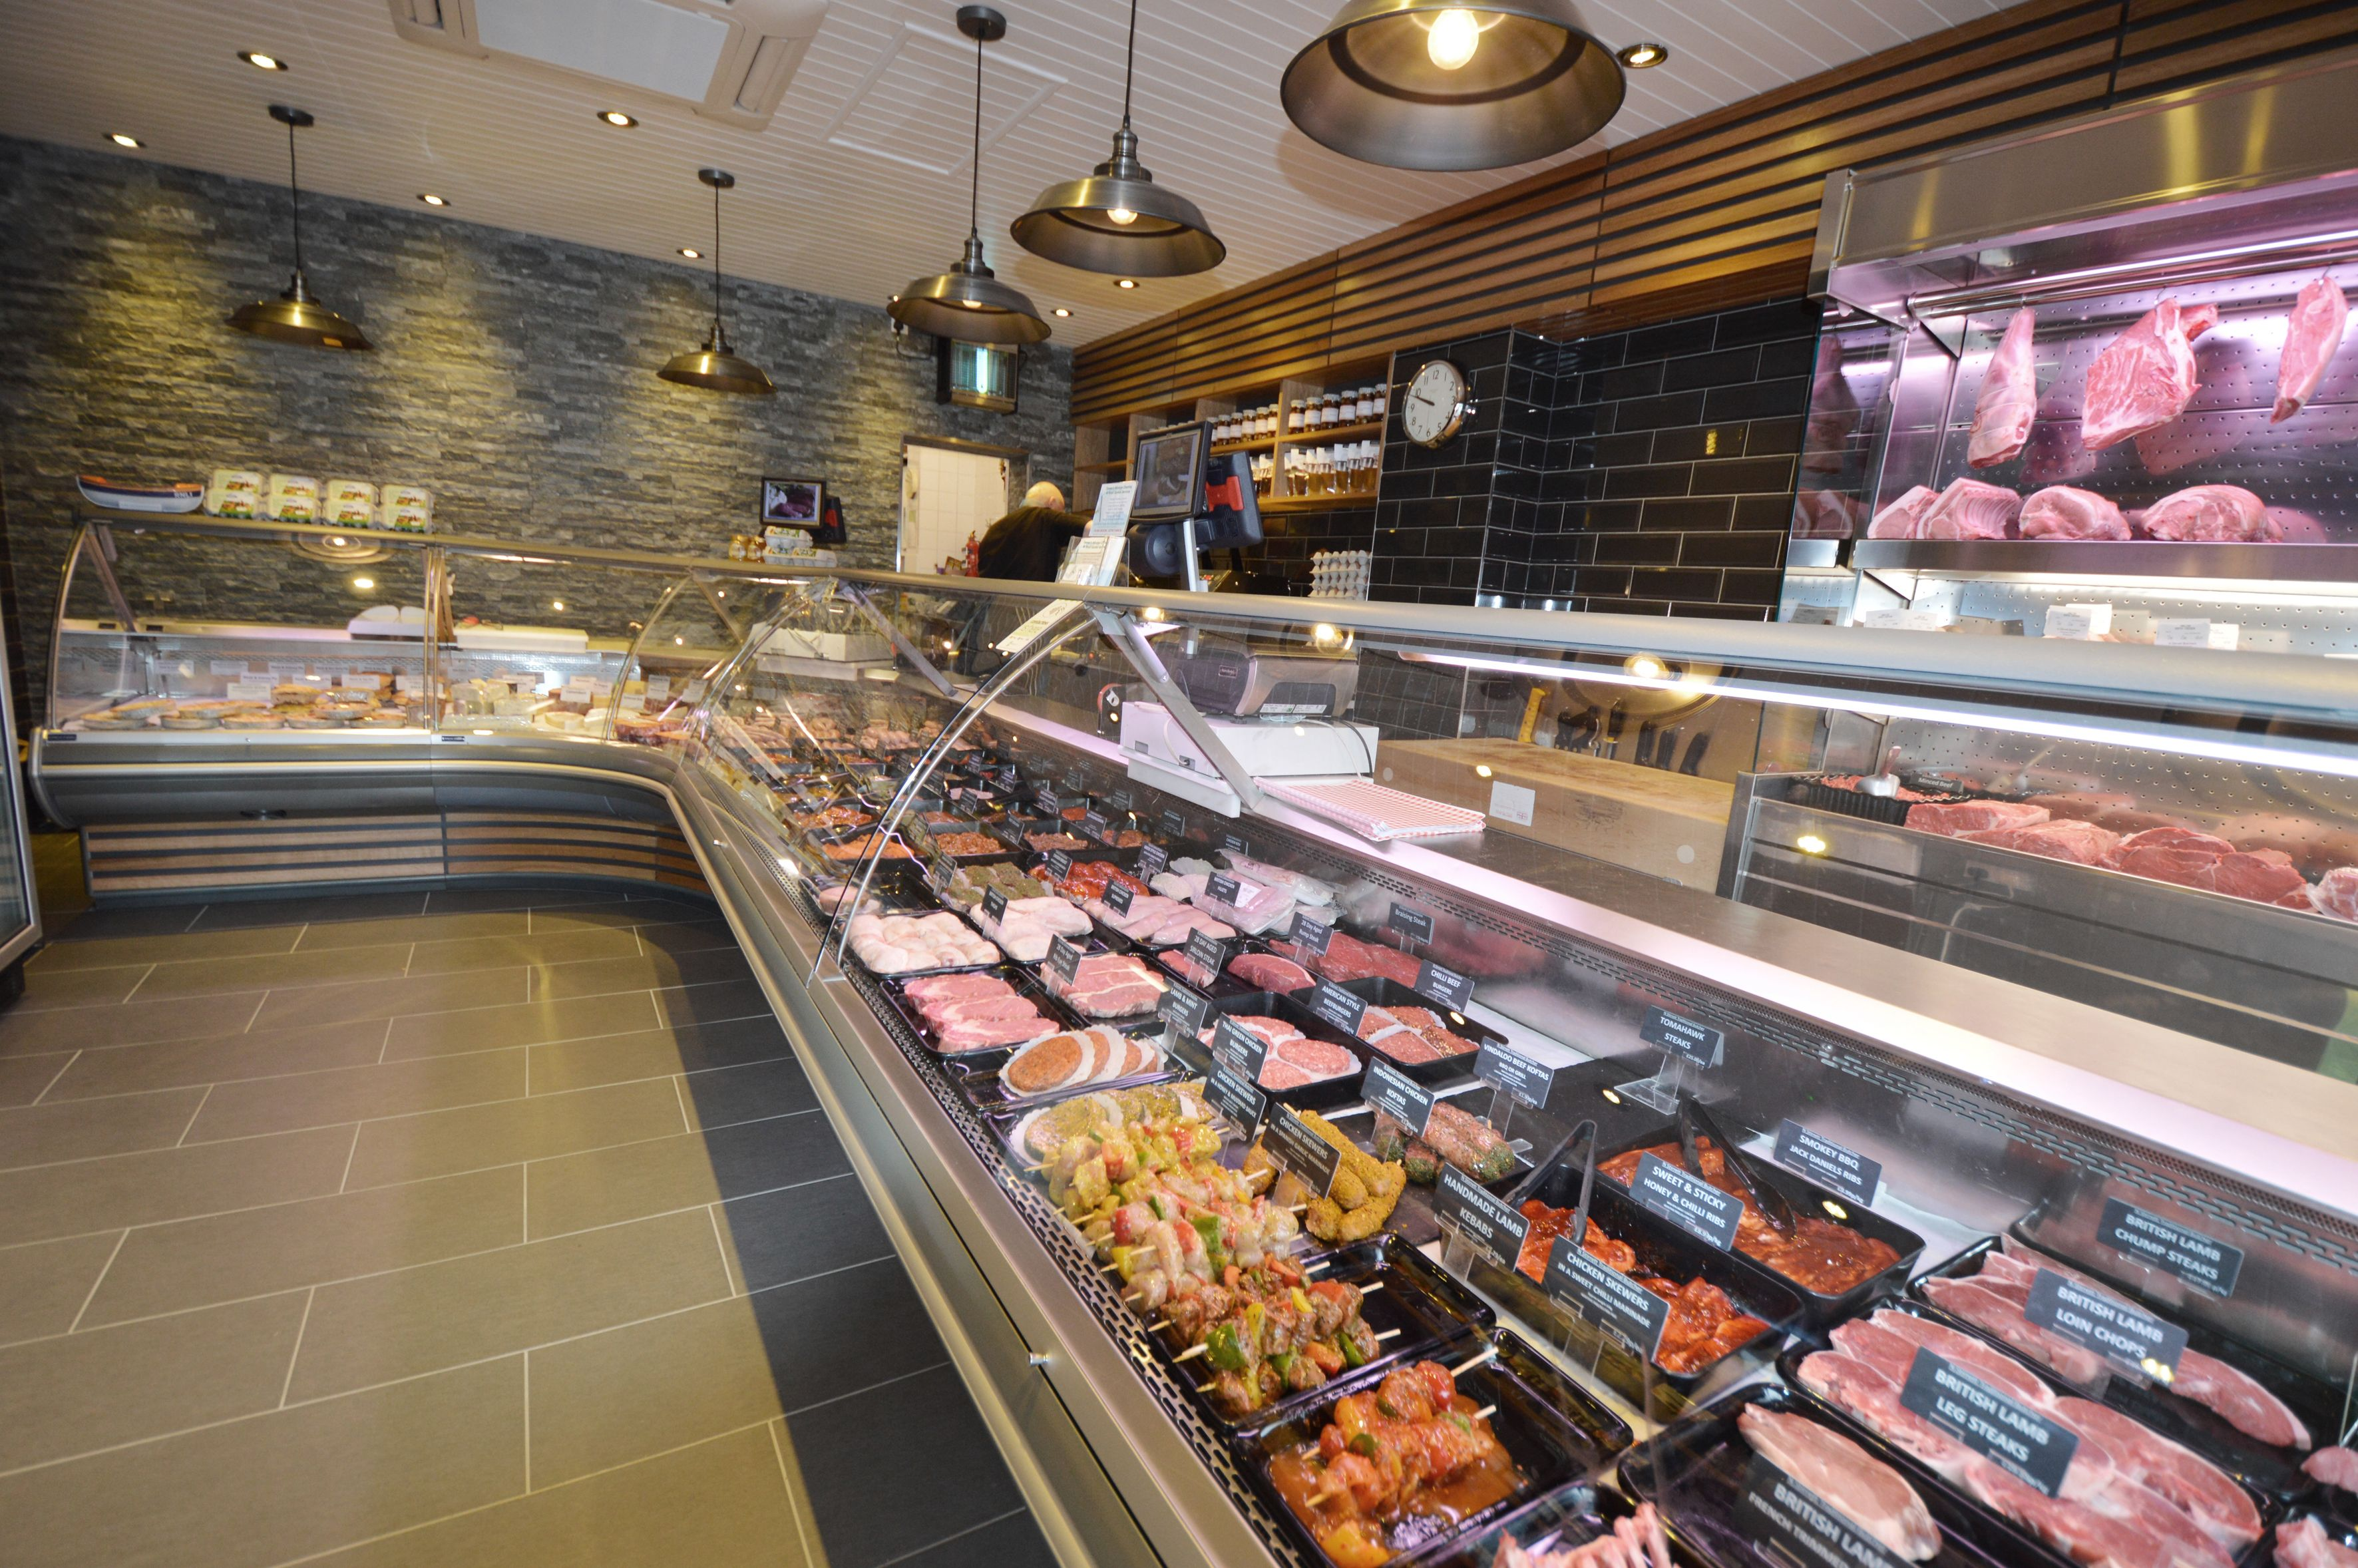 Butchers Food Retail Design And Shopfitting Throughout The Uk By